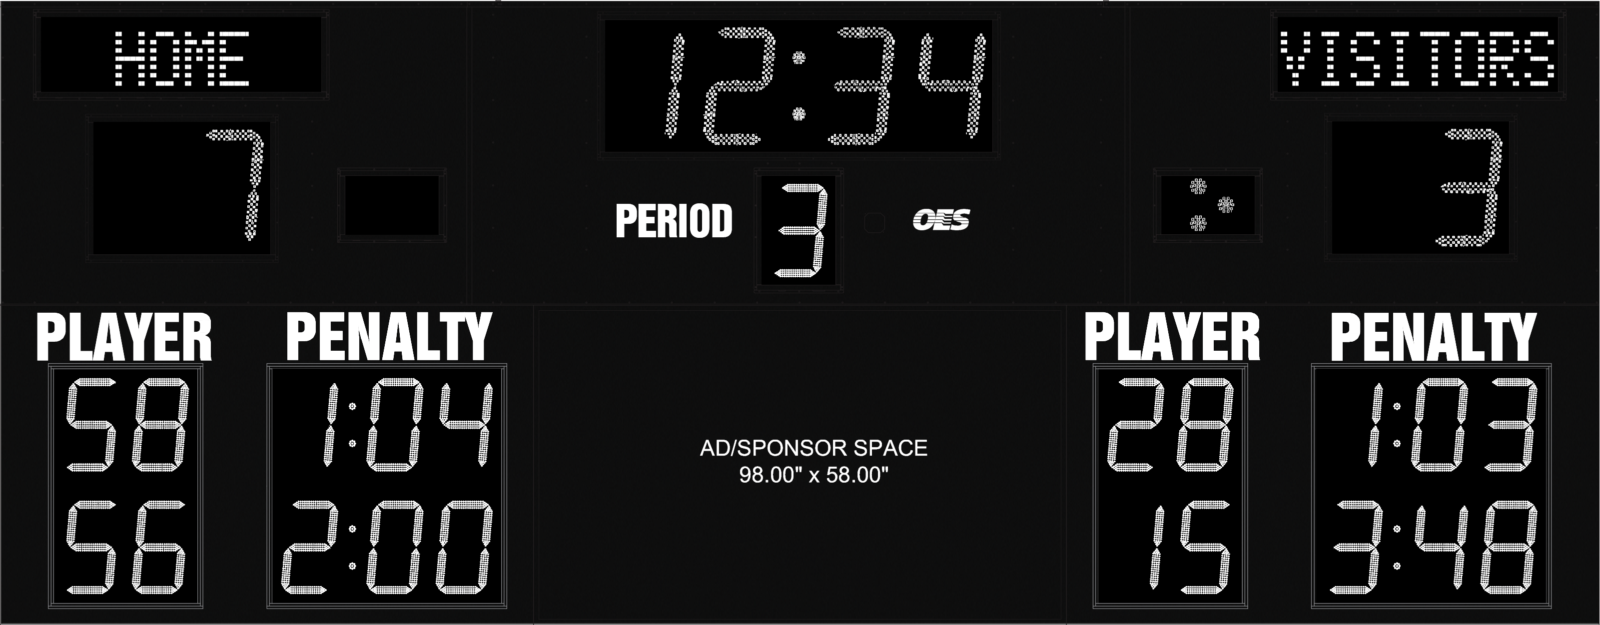 black scoreboard with ad space